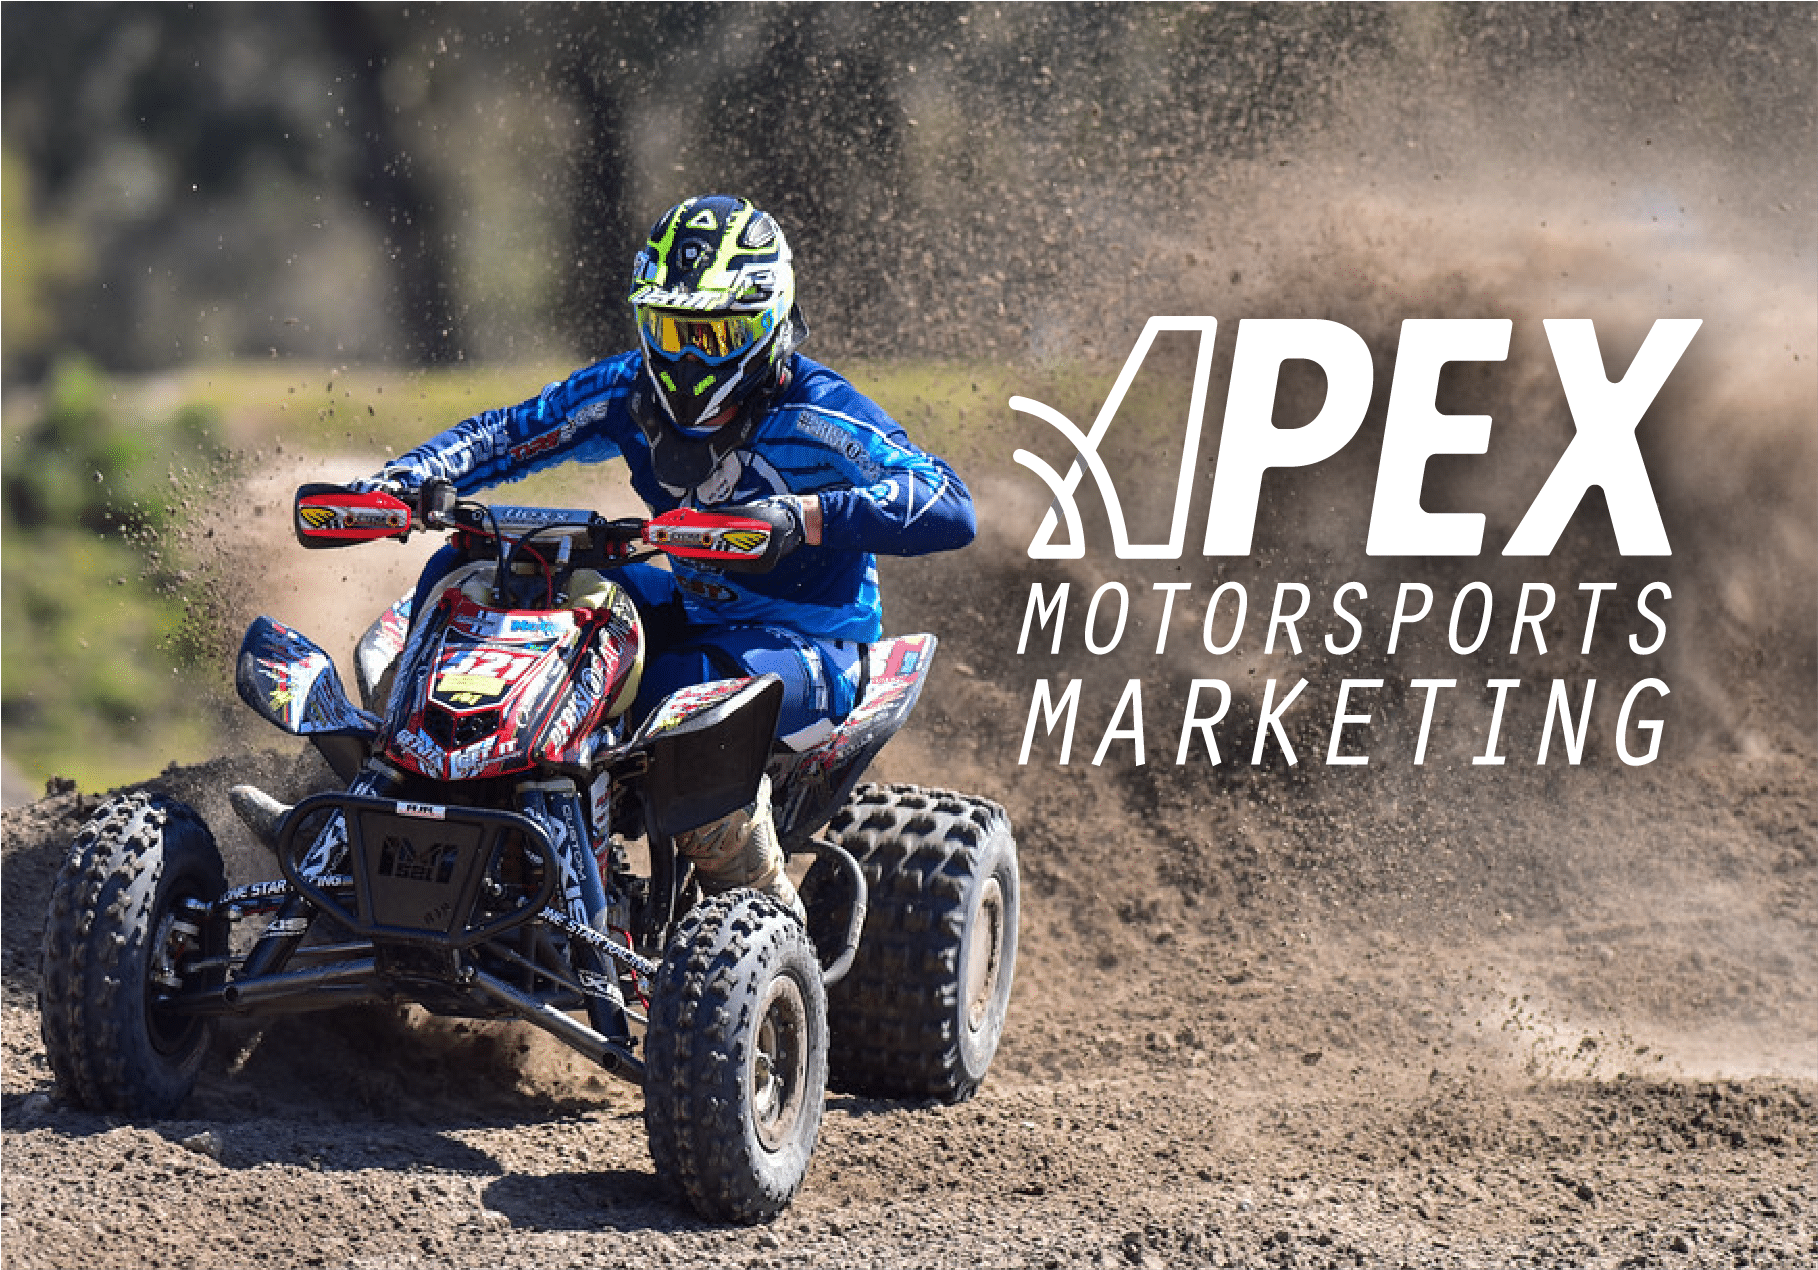 APEX Motorsports Marketing